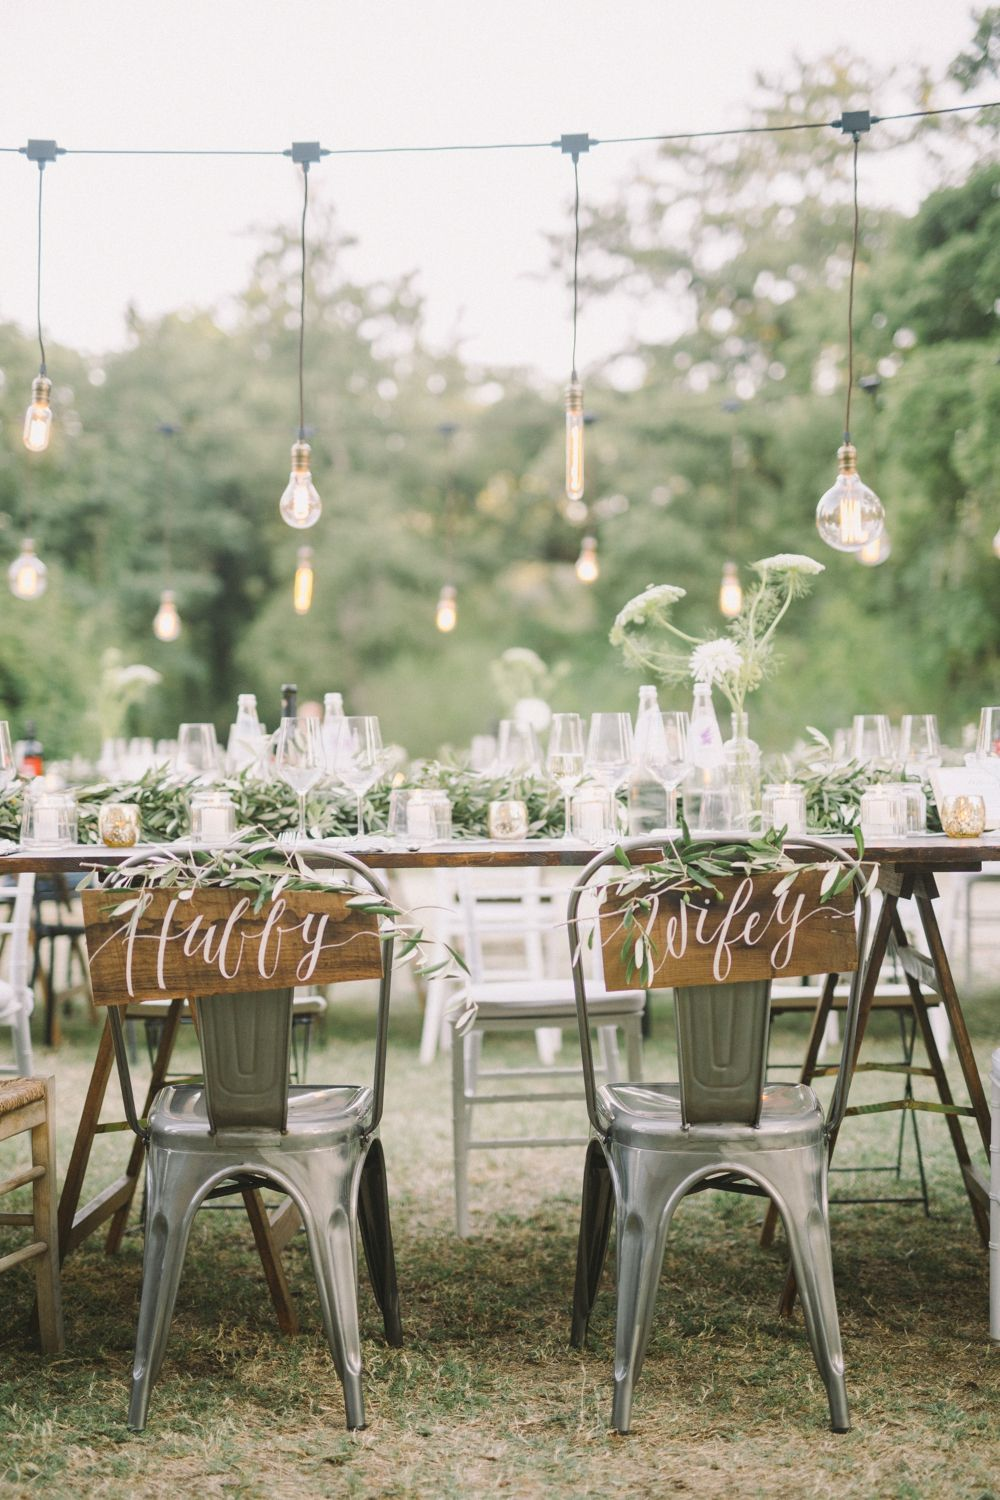 Bride and Groom Chairs - Boho industrial wedding in Tuscany from Laura Bravi Events